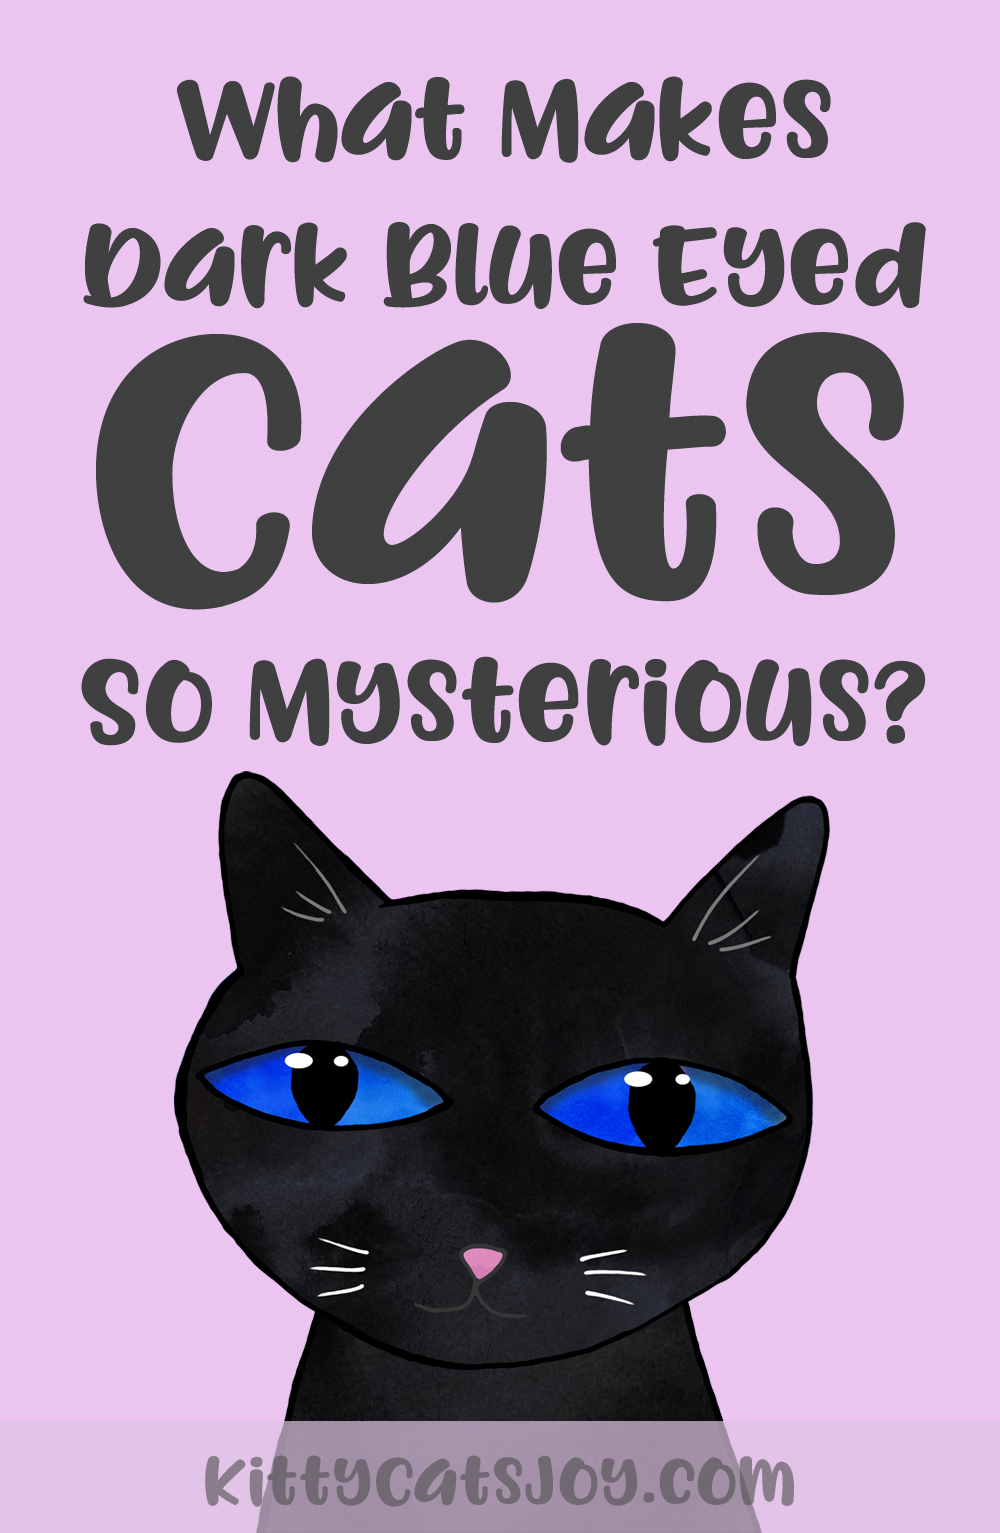 What Makes Dark Blue Eyed Cats So Mysterious Kitty Cats Joy